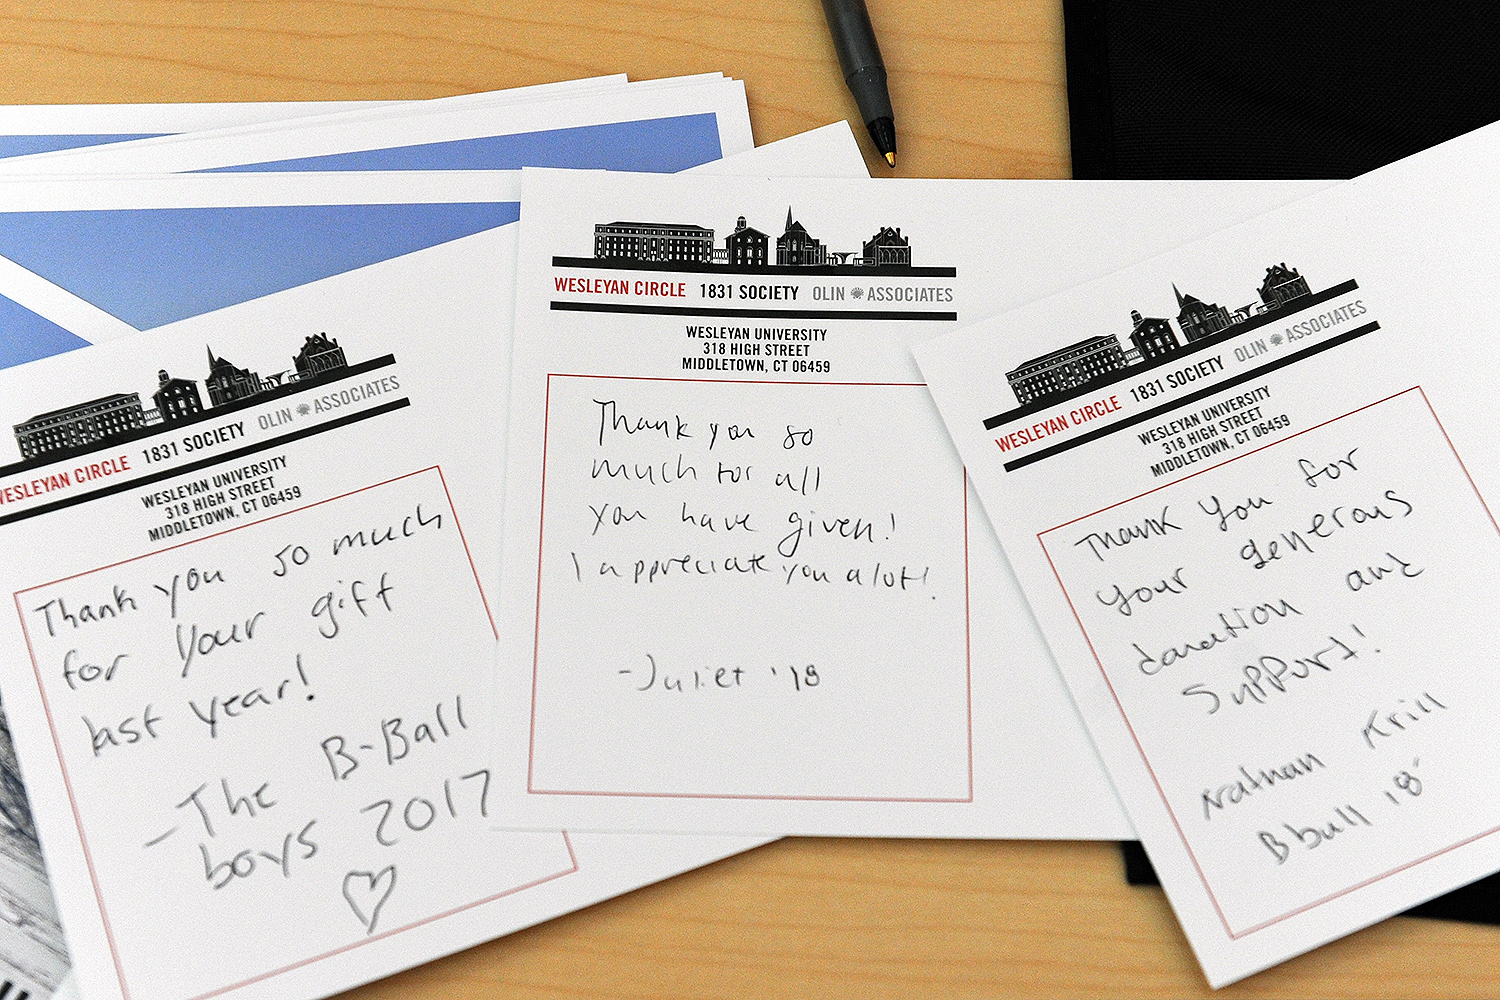 Students had an opportunity to write brief thank you notes to alumni, parents and friends who've made gifts to Wesleyan. Many of these gifts support financial aid.